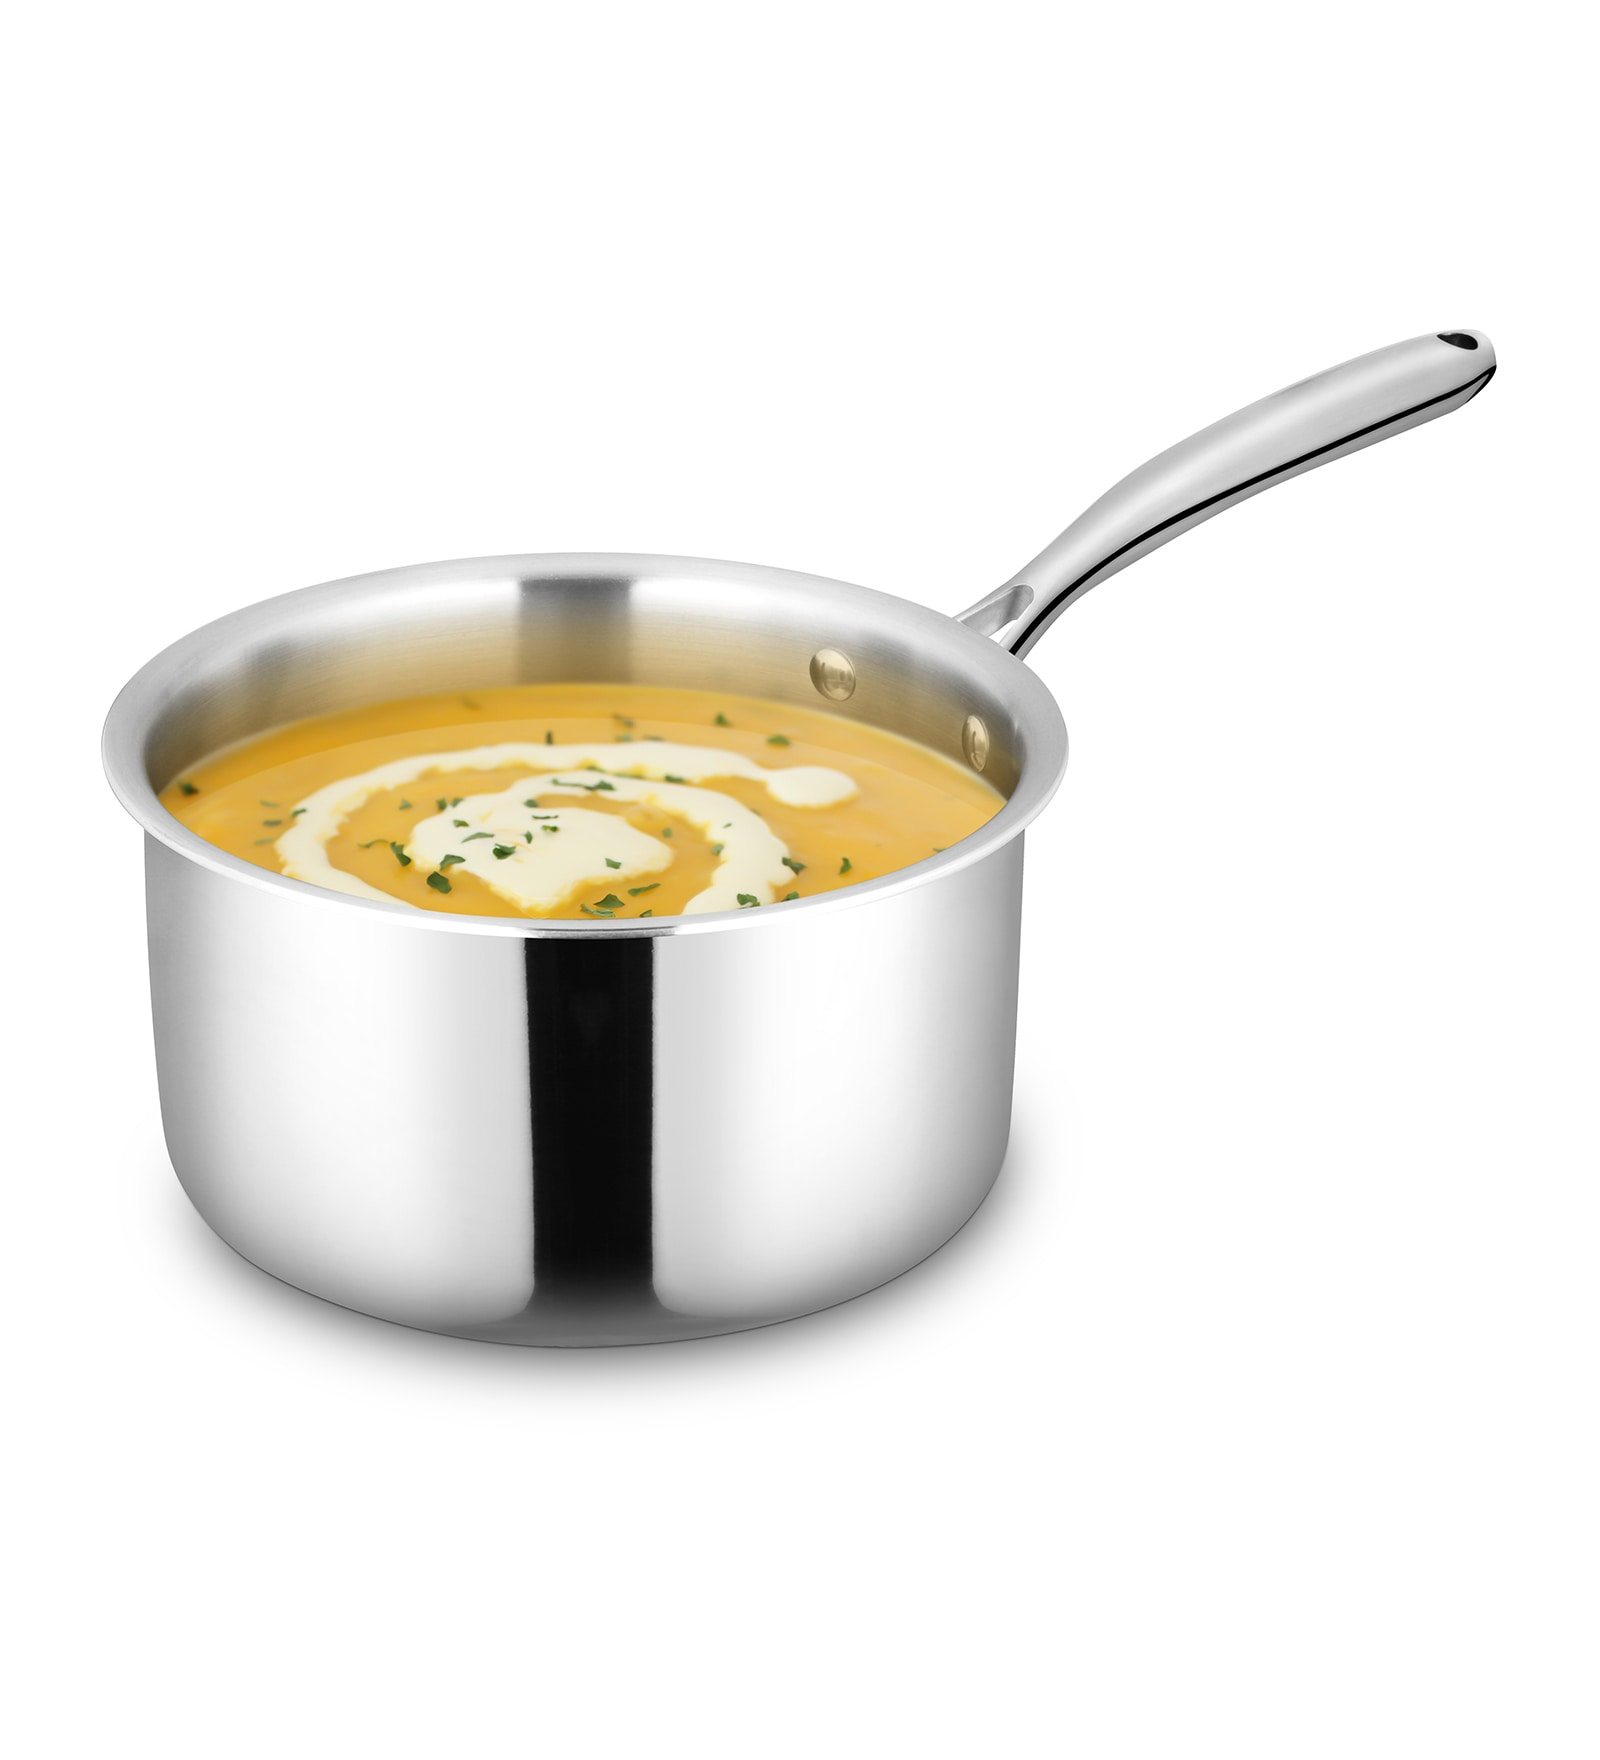 Stainless Steel 1.6L Pantastic Tri Ply Sauce Pan by Bonita